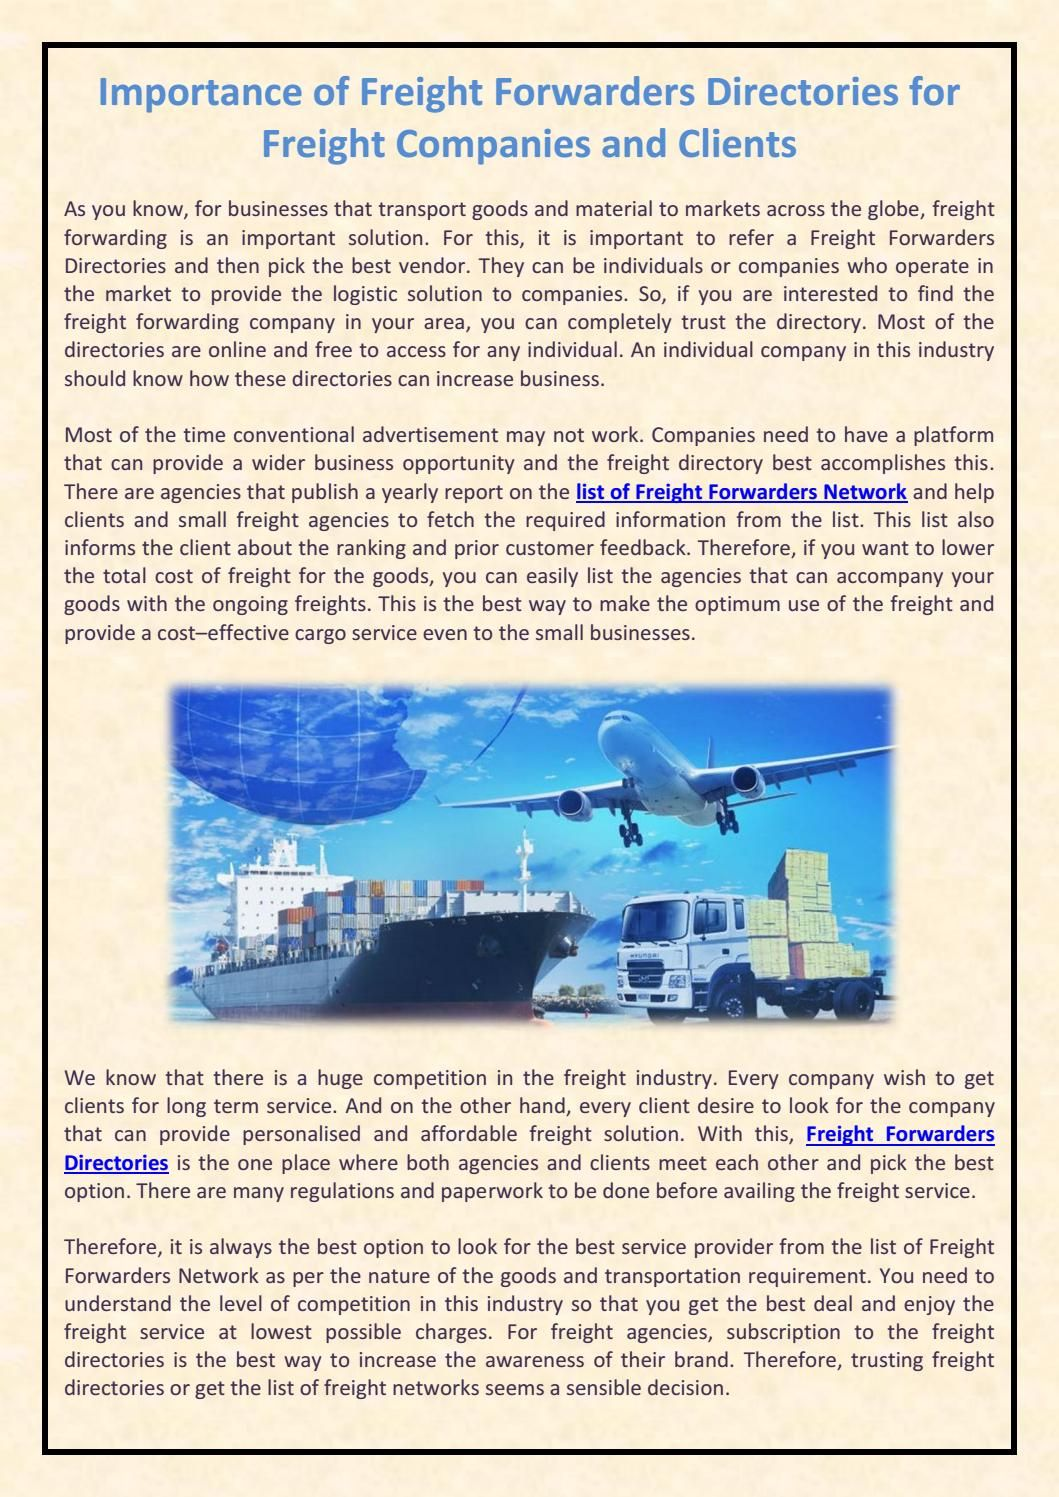 Importance of freight forwarders directories for freight companies